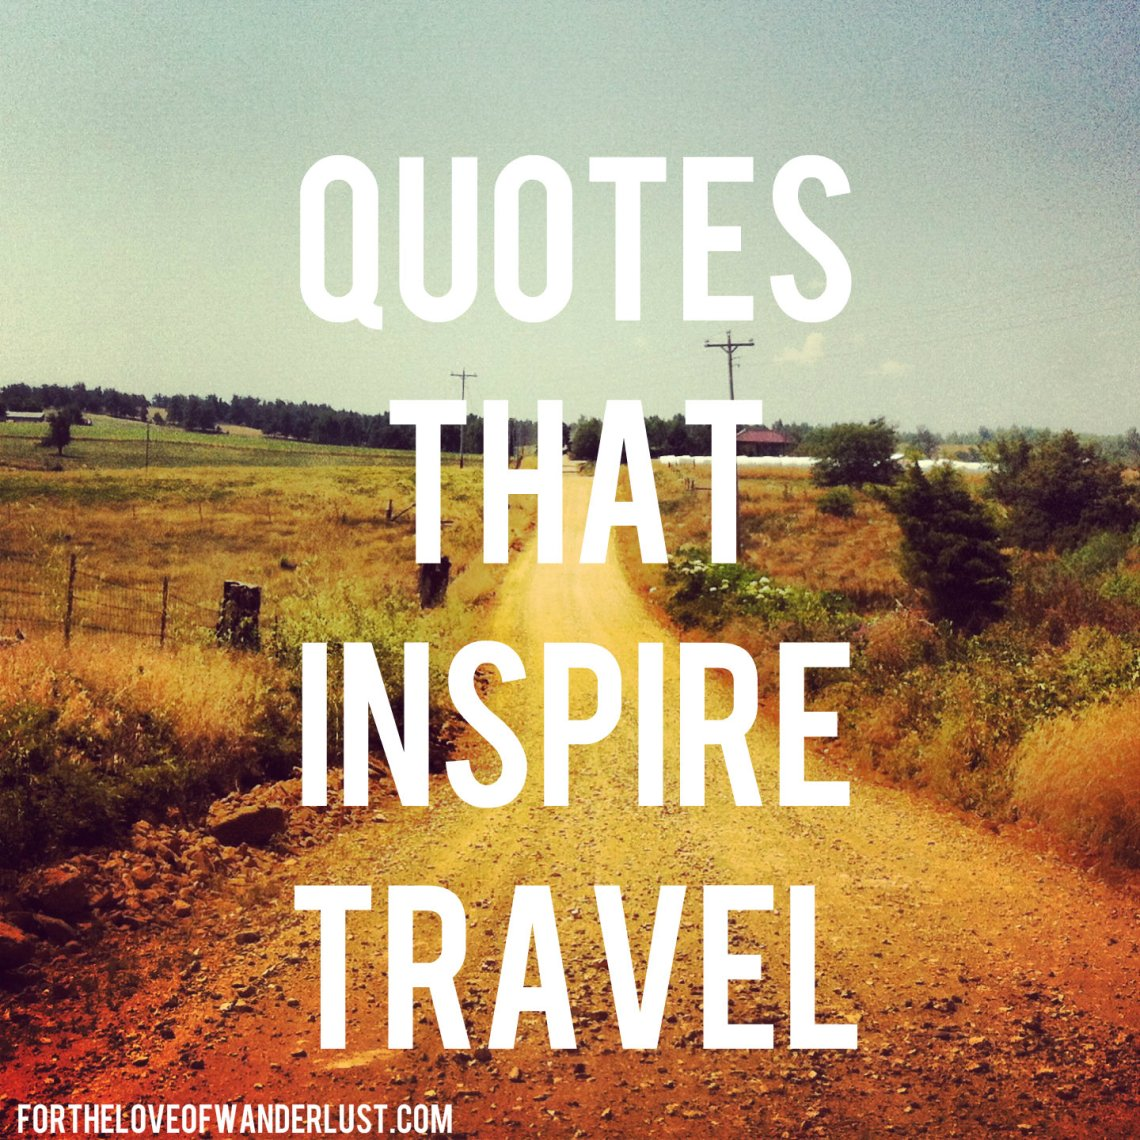 I started back to school yesterday so its been a bit hectic and my post is going to have to be short and sweet five quotes that inspire travel